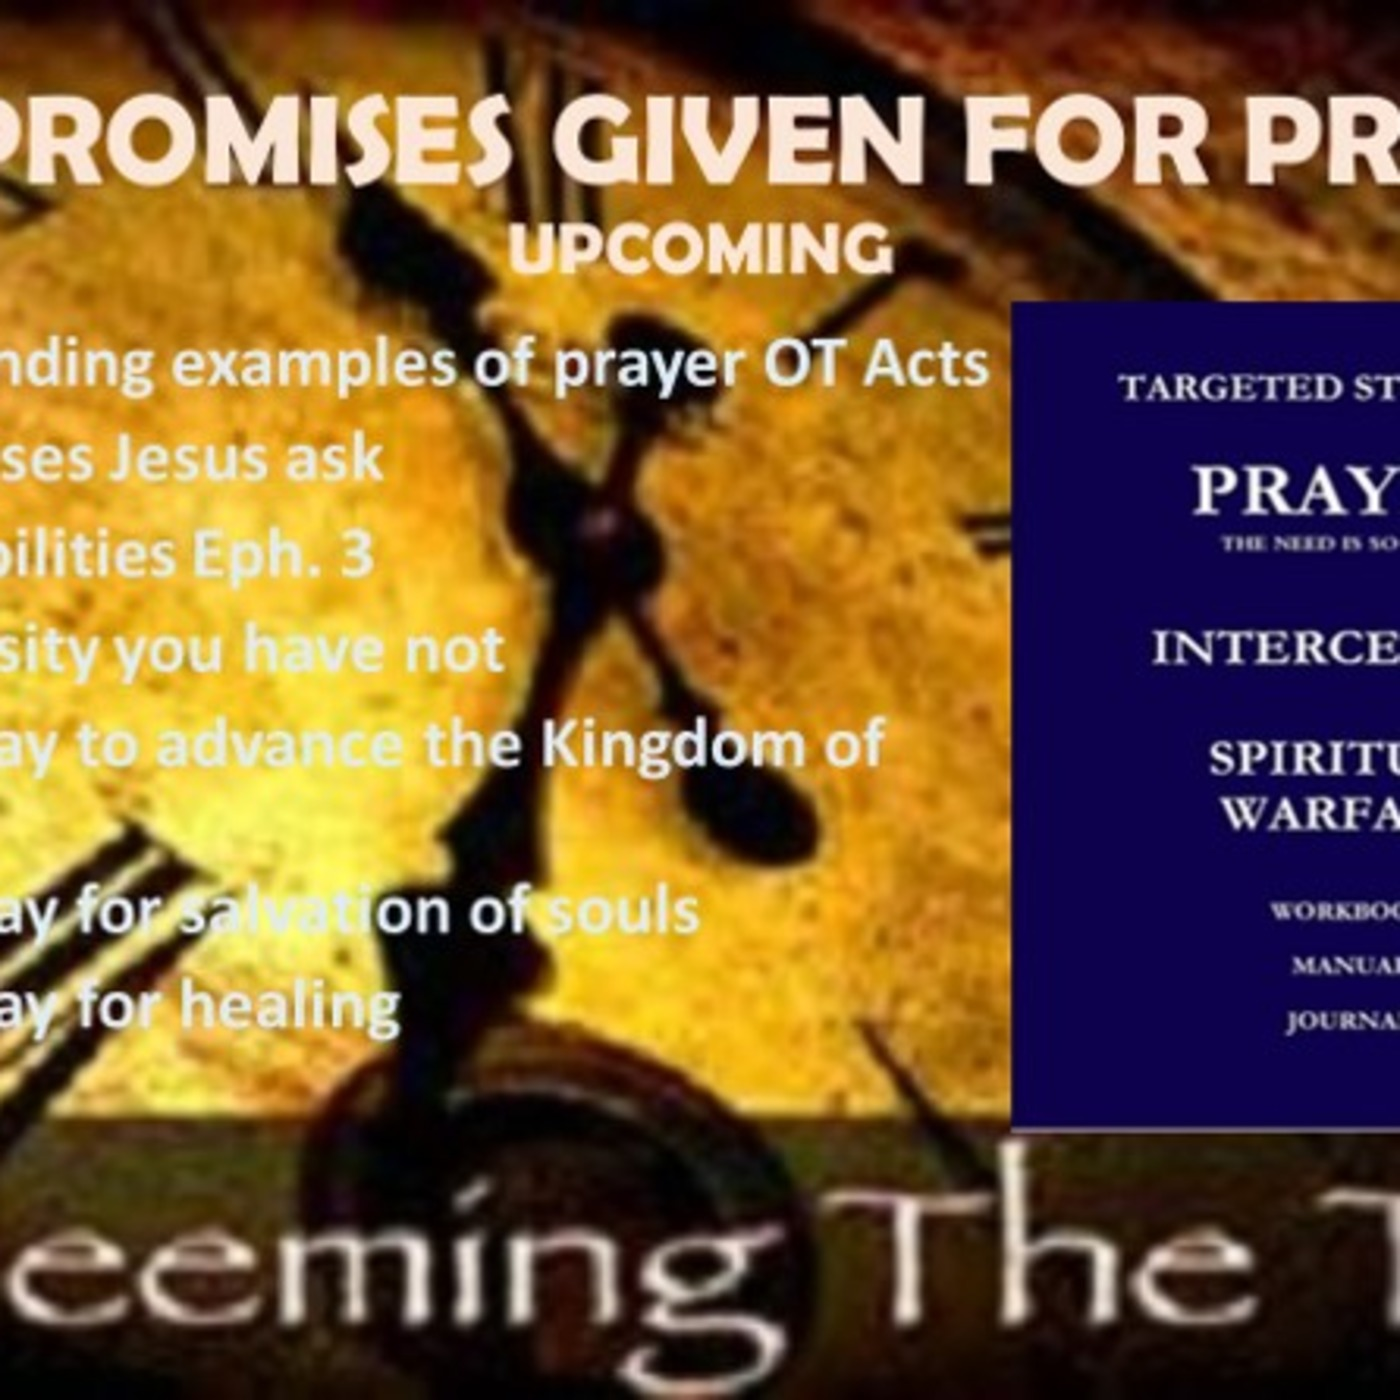 THE ASTOUNDING POWER OF PRAYER PART 2 PROMISES ACCESS